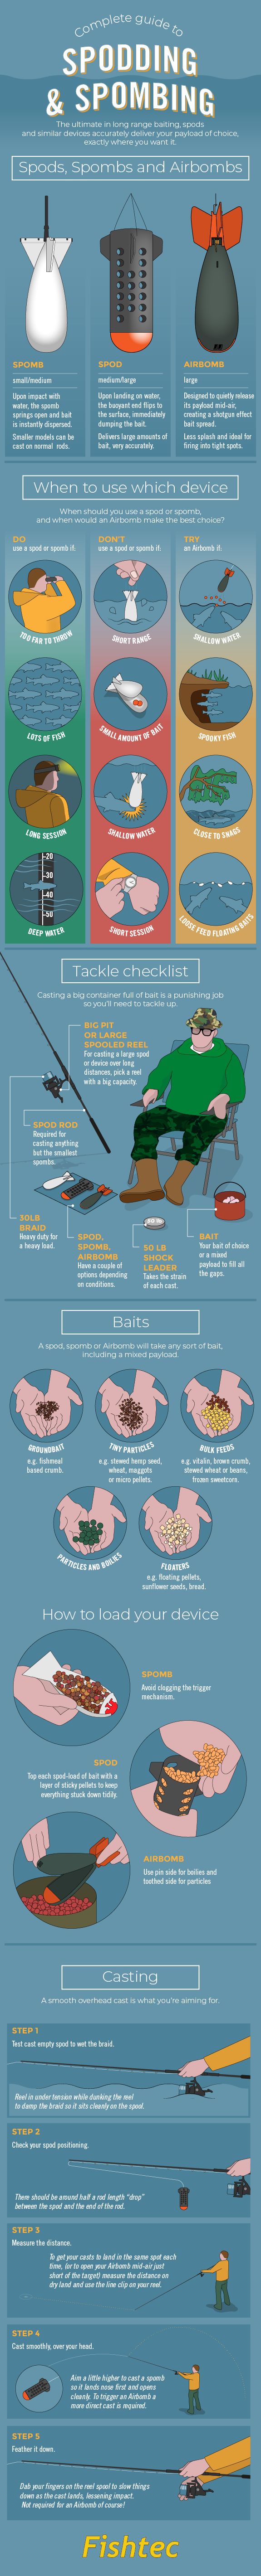 Maximum Impact Fishing: How to Use the Spod, Spomb and AirBomb - Infographic